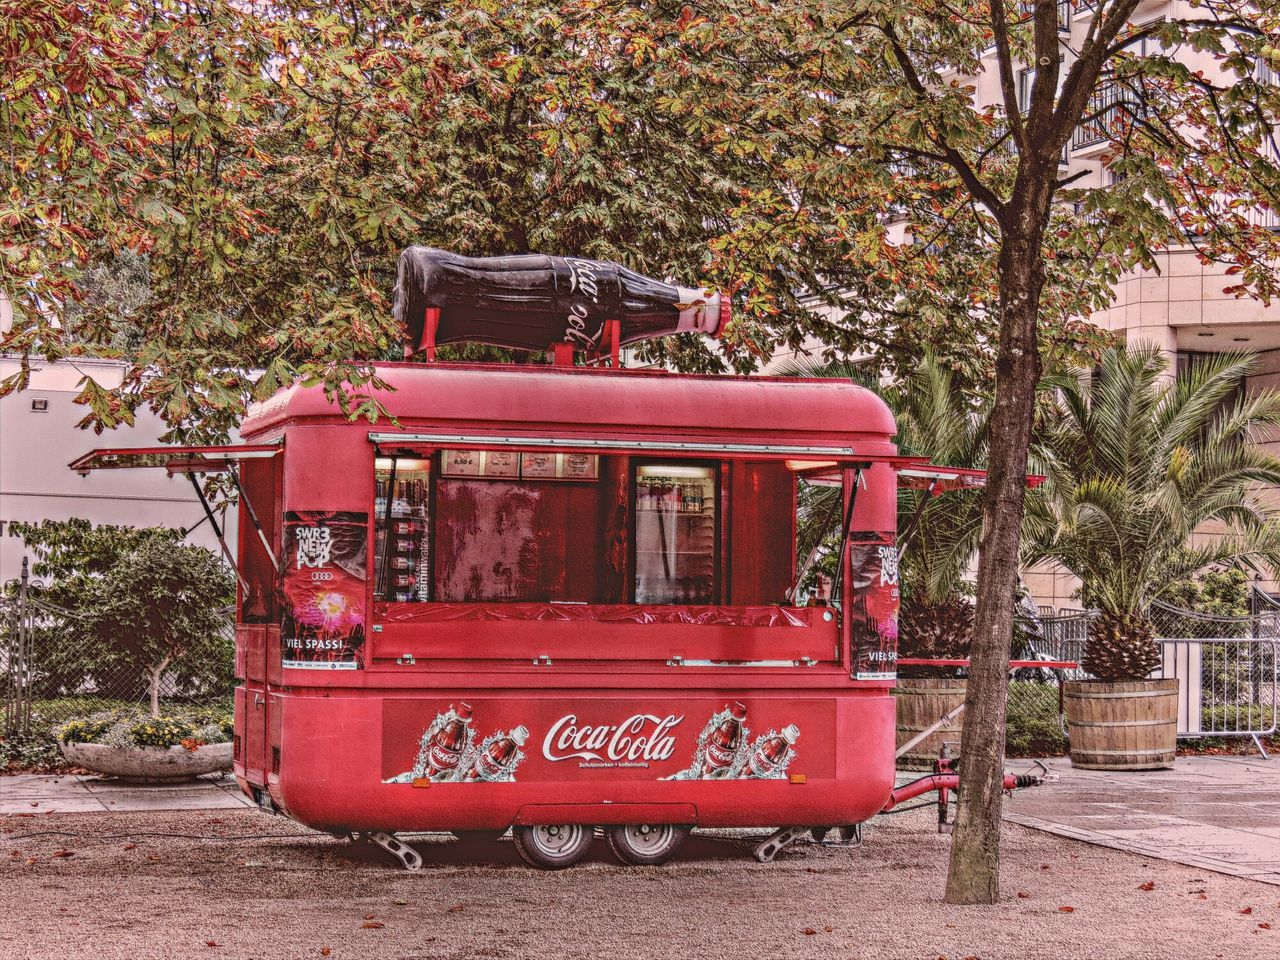 Swr3 NEWPOP festival 2015 Streetphotography Coca Cola Germany Baden-Baden Places EyeEm Cityview Street Photography Wayoflife